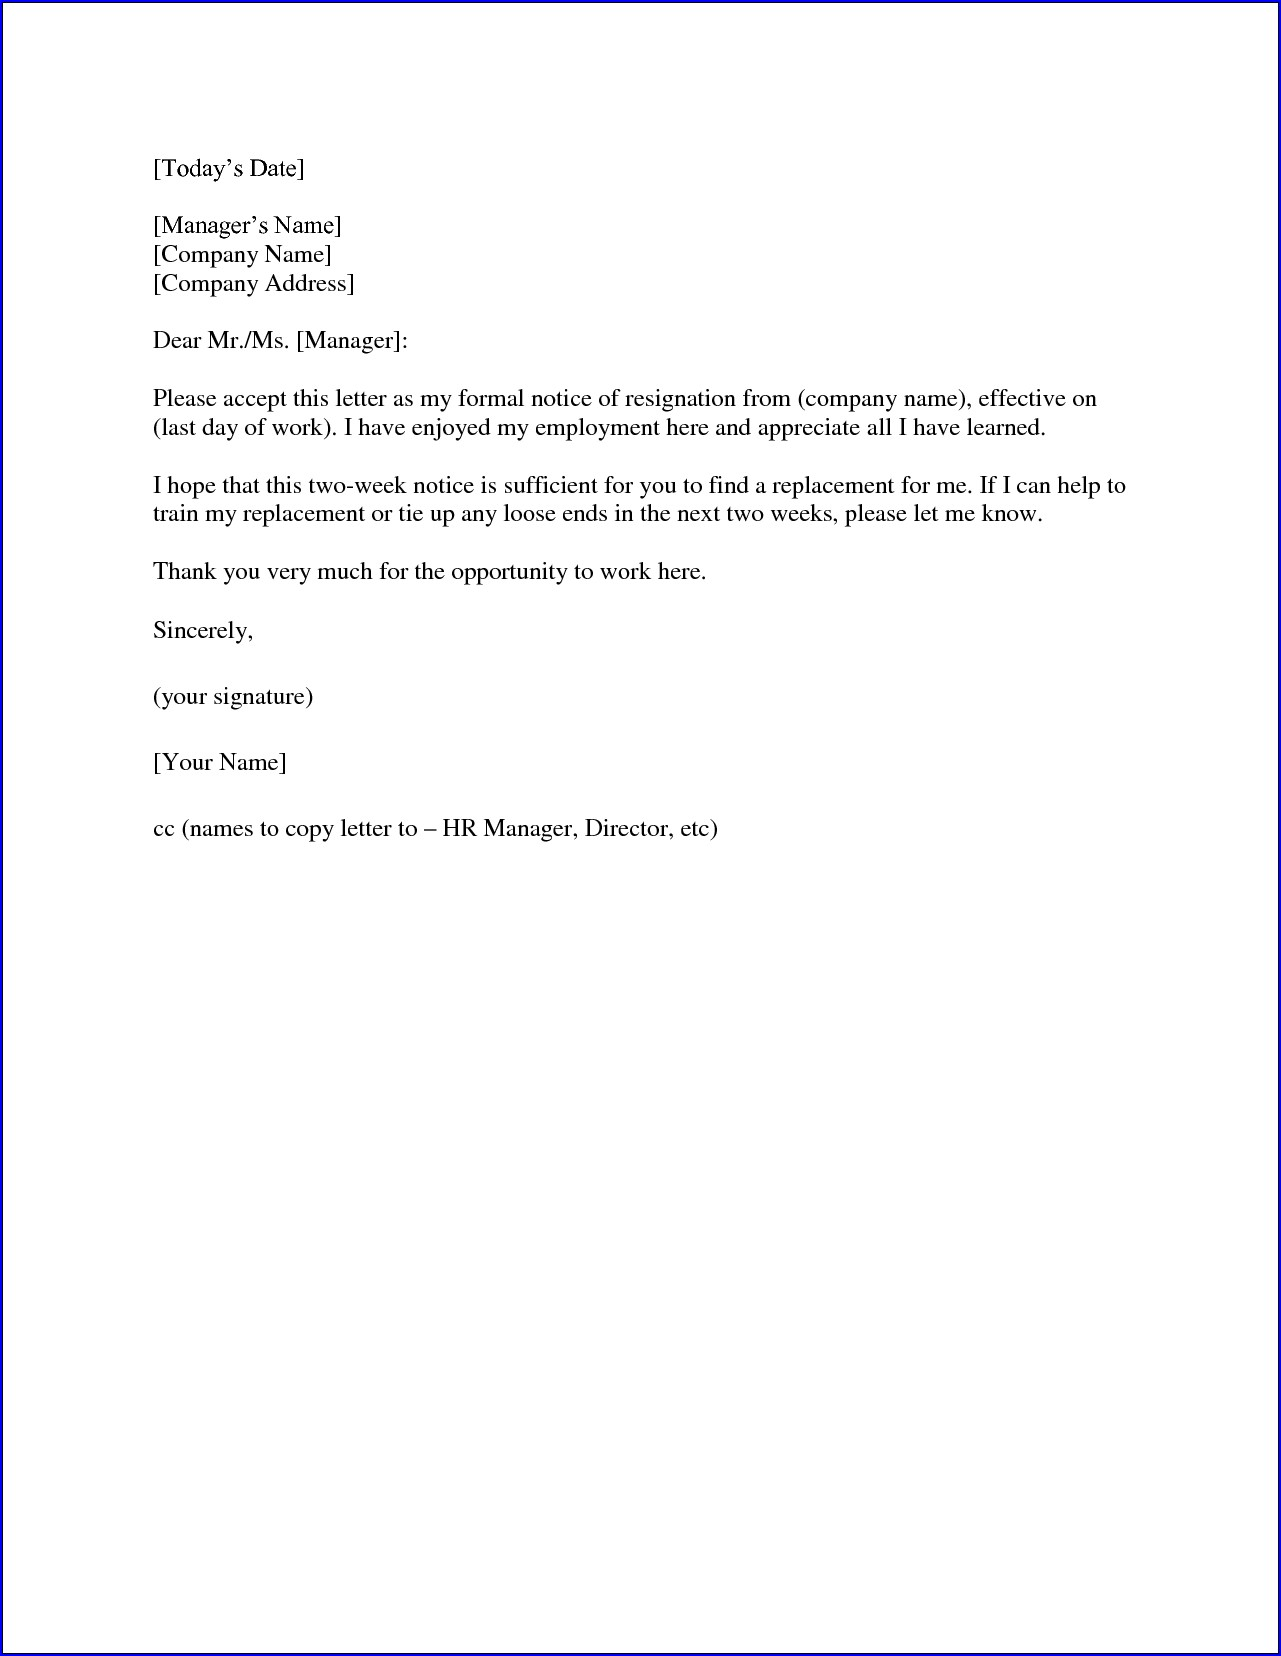 Sample of Resignation Letter Two Weeks Notice